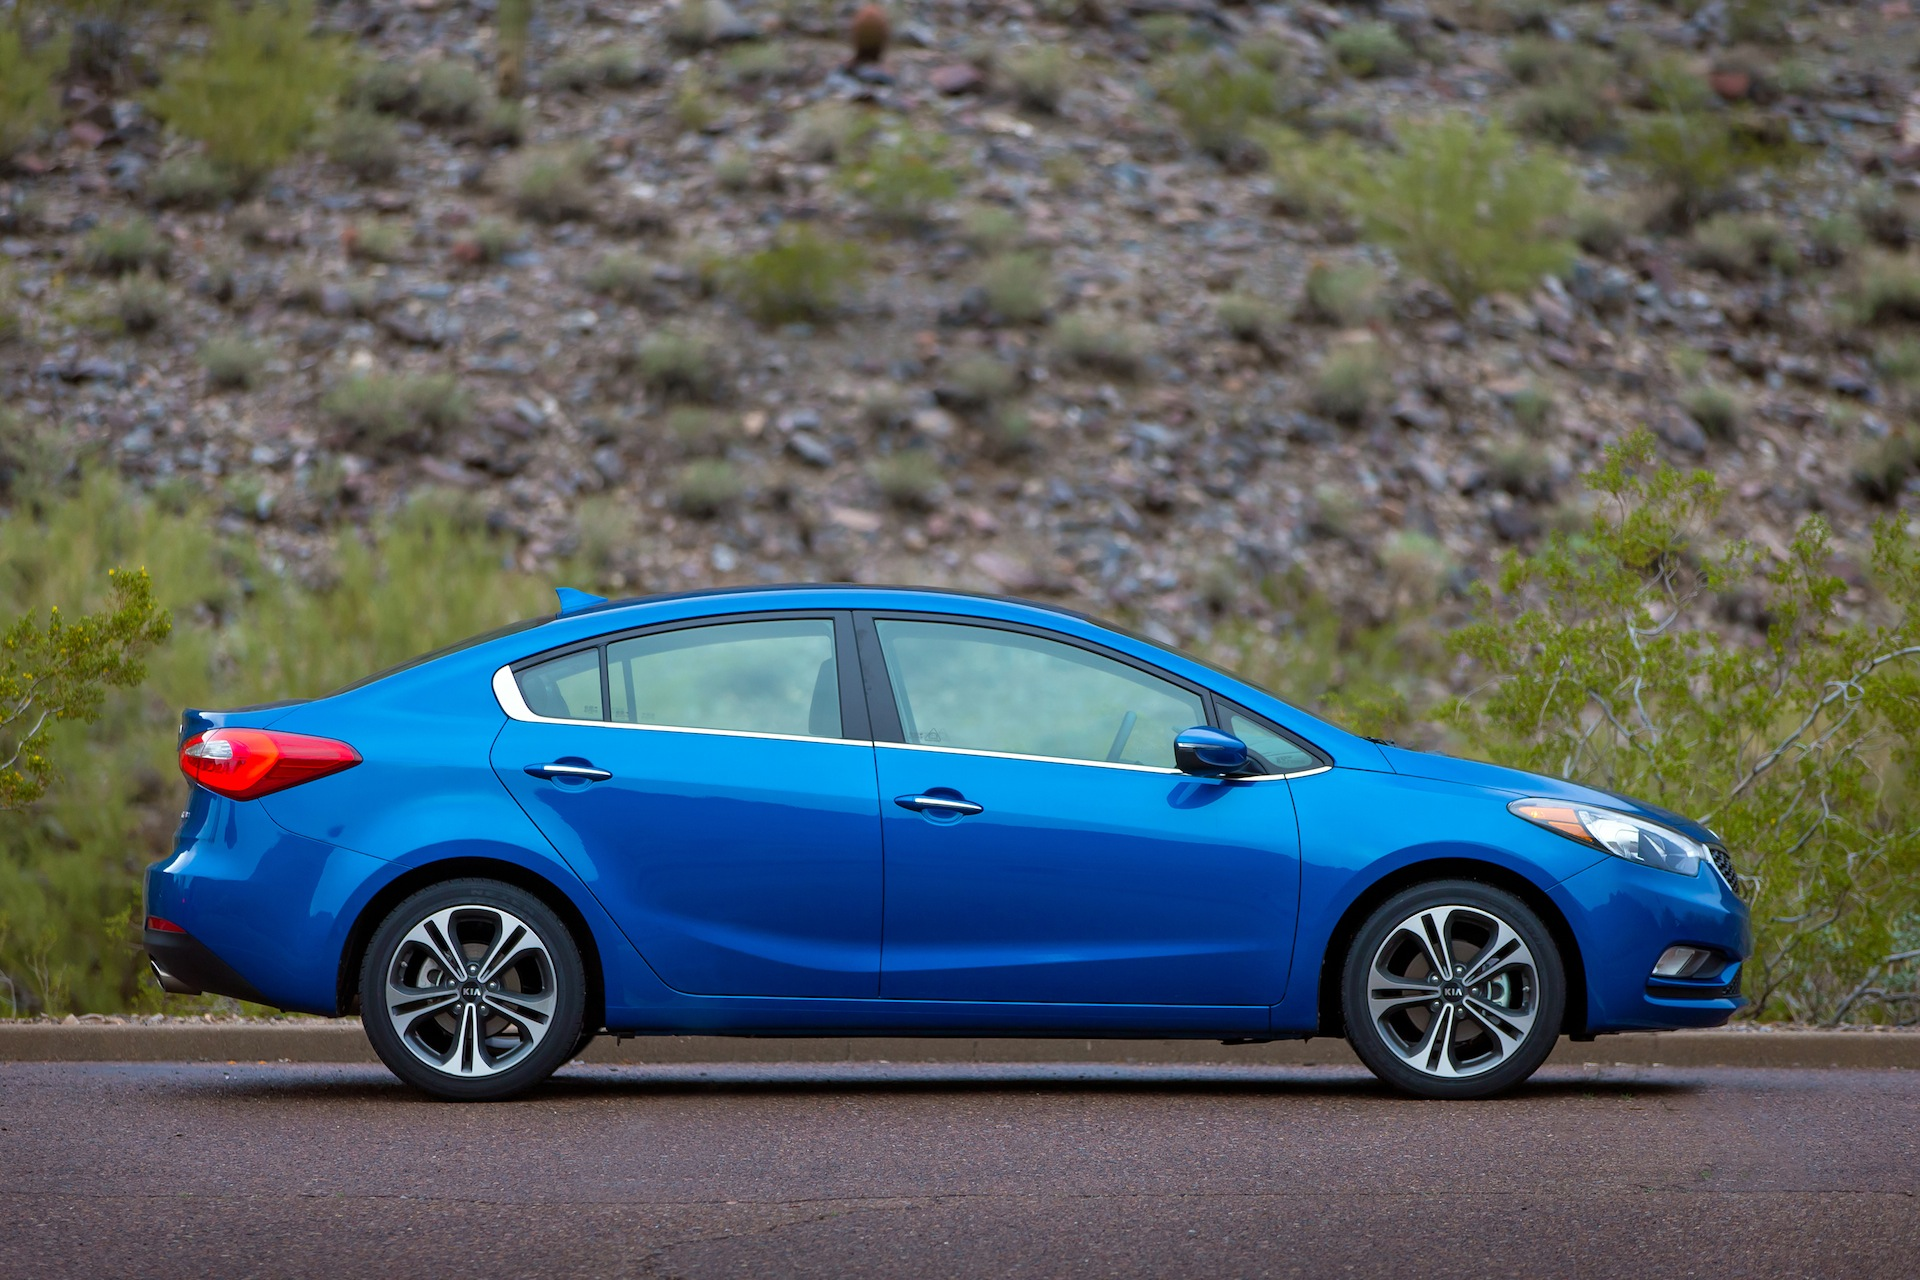 2014 kia forte sedan pricing and gas mileage details. Black Bedroom Furniture Sets. Home Design Ideas